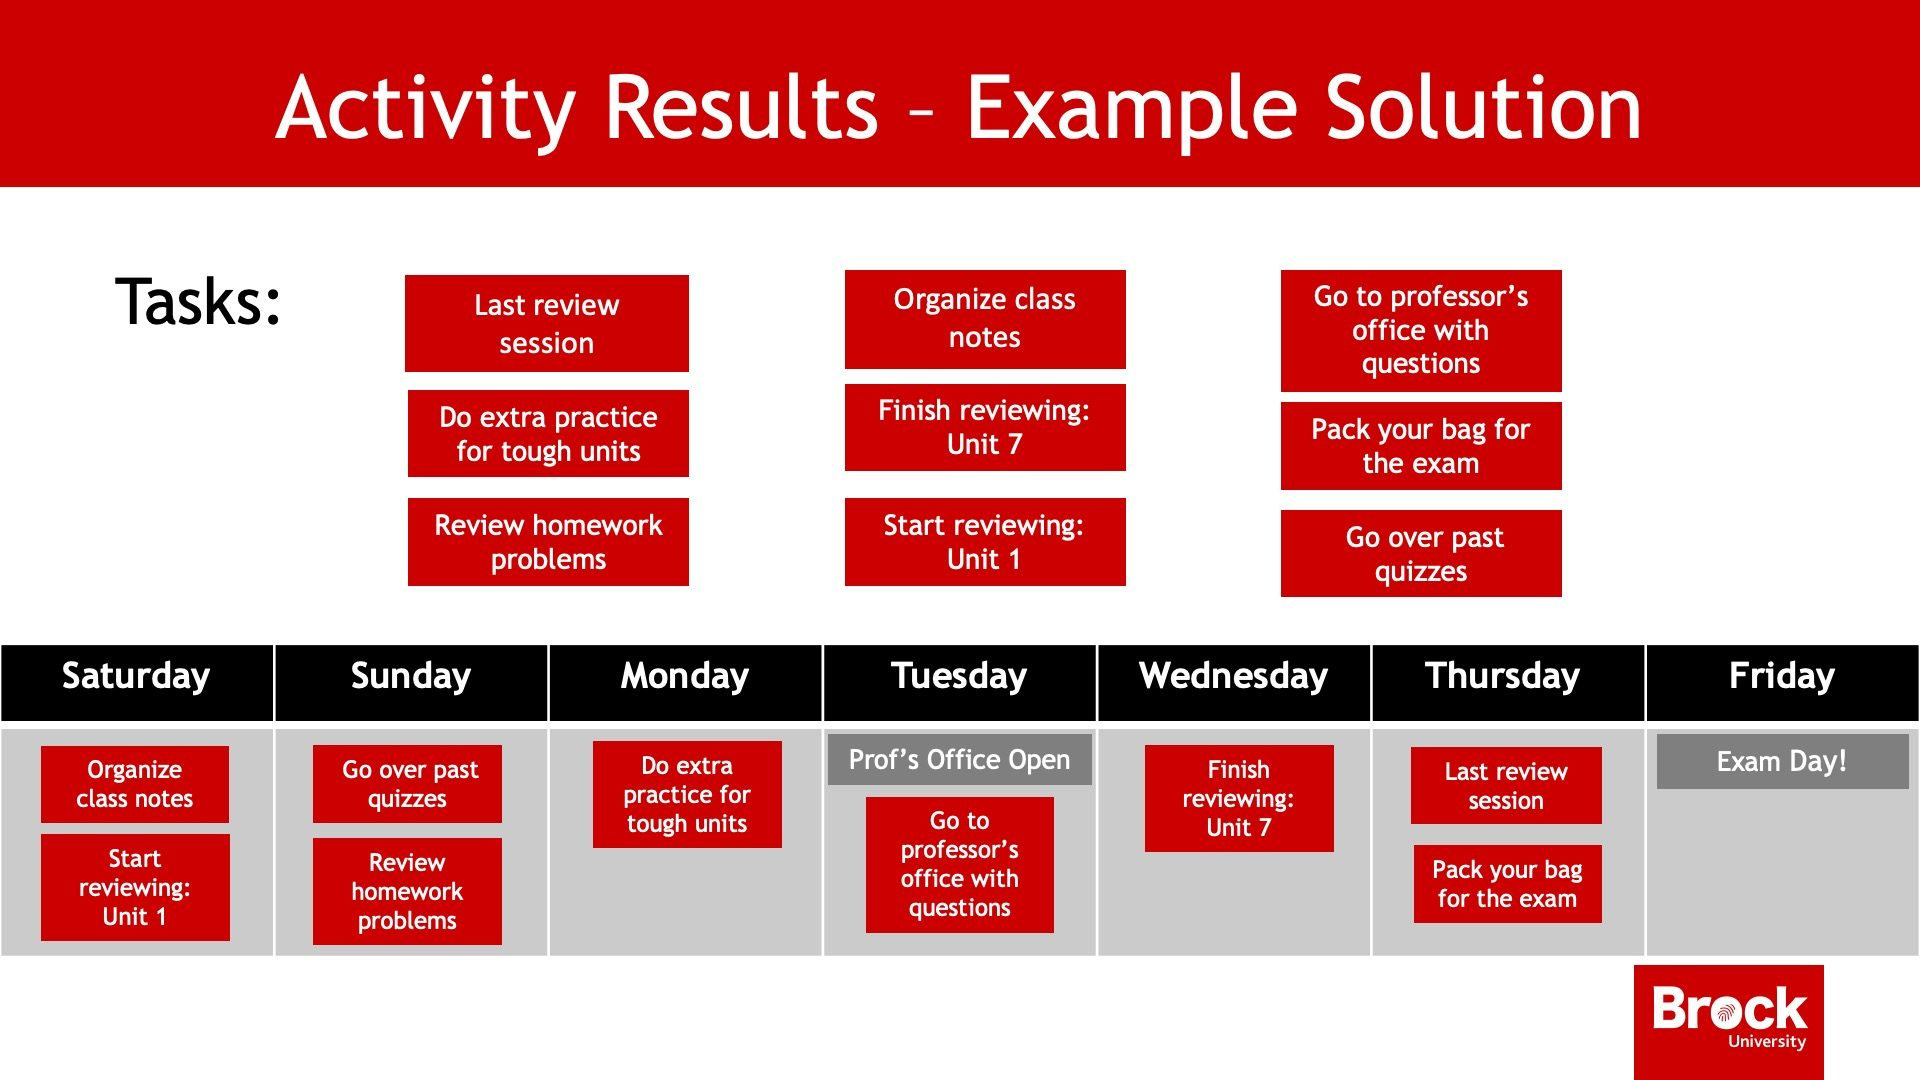 Activity results - example solution